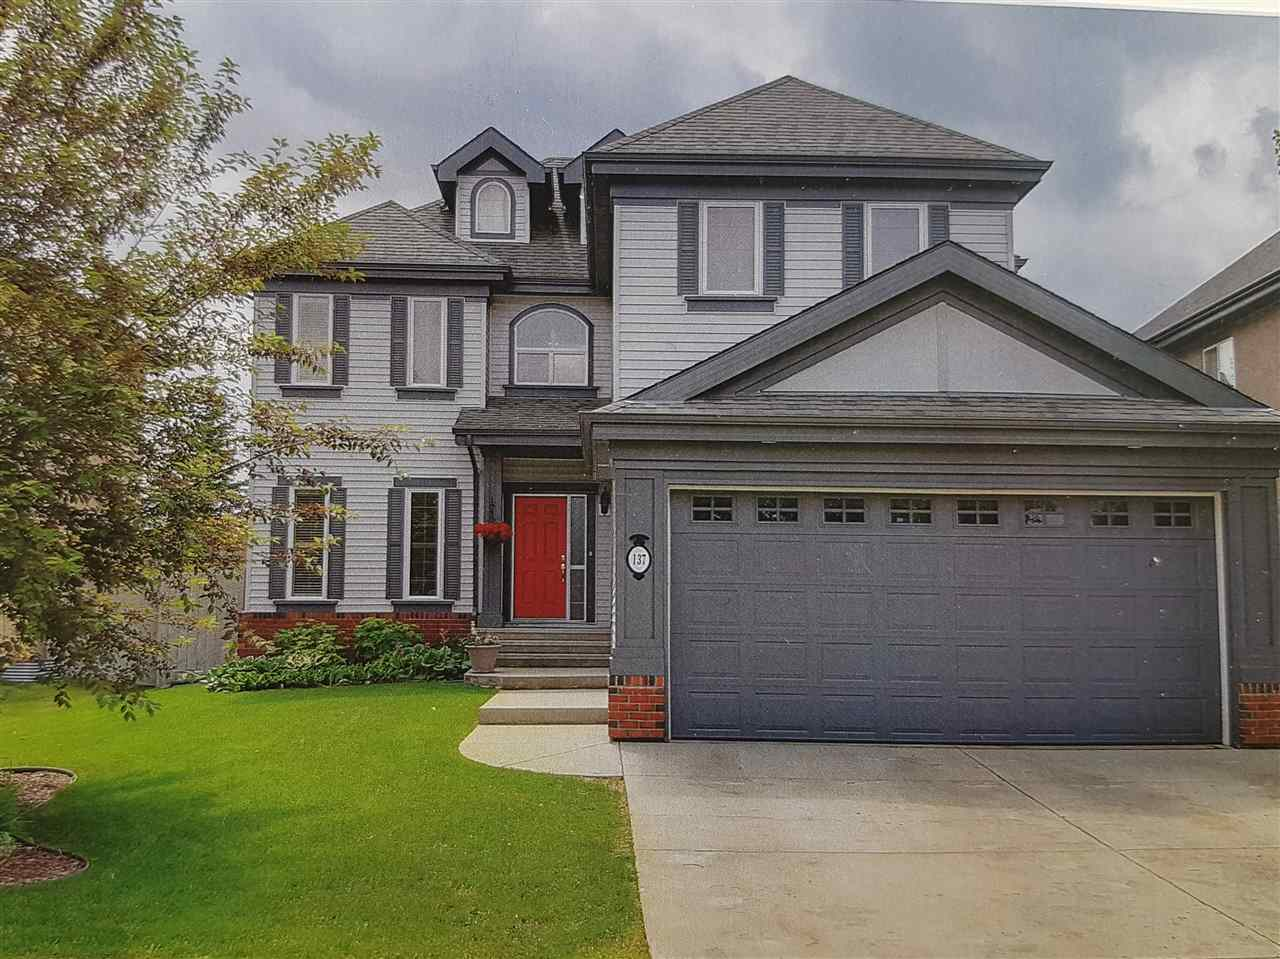 137 CALDWELL Way, 3 bed, 2.1 bath, at $585,000